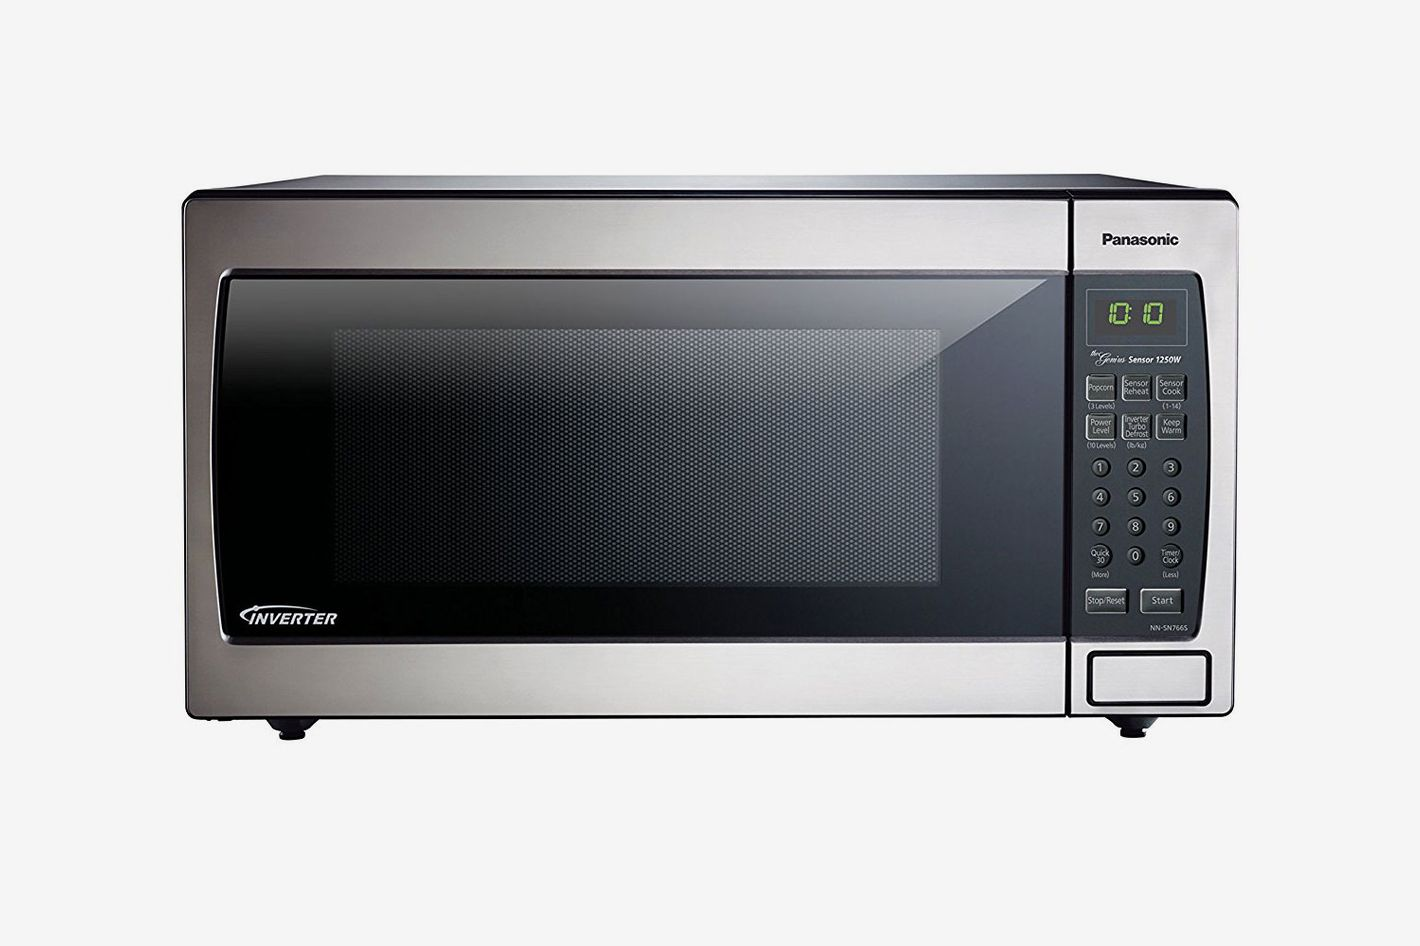 Panasonic Nn Sn766s Countertop Built In Microwave With Inverter Technology